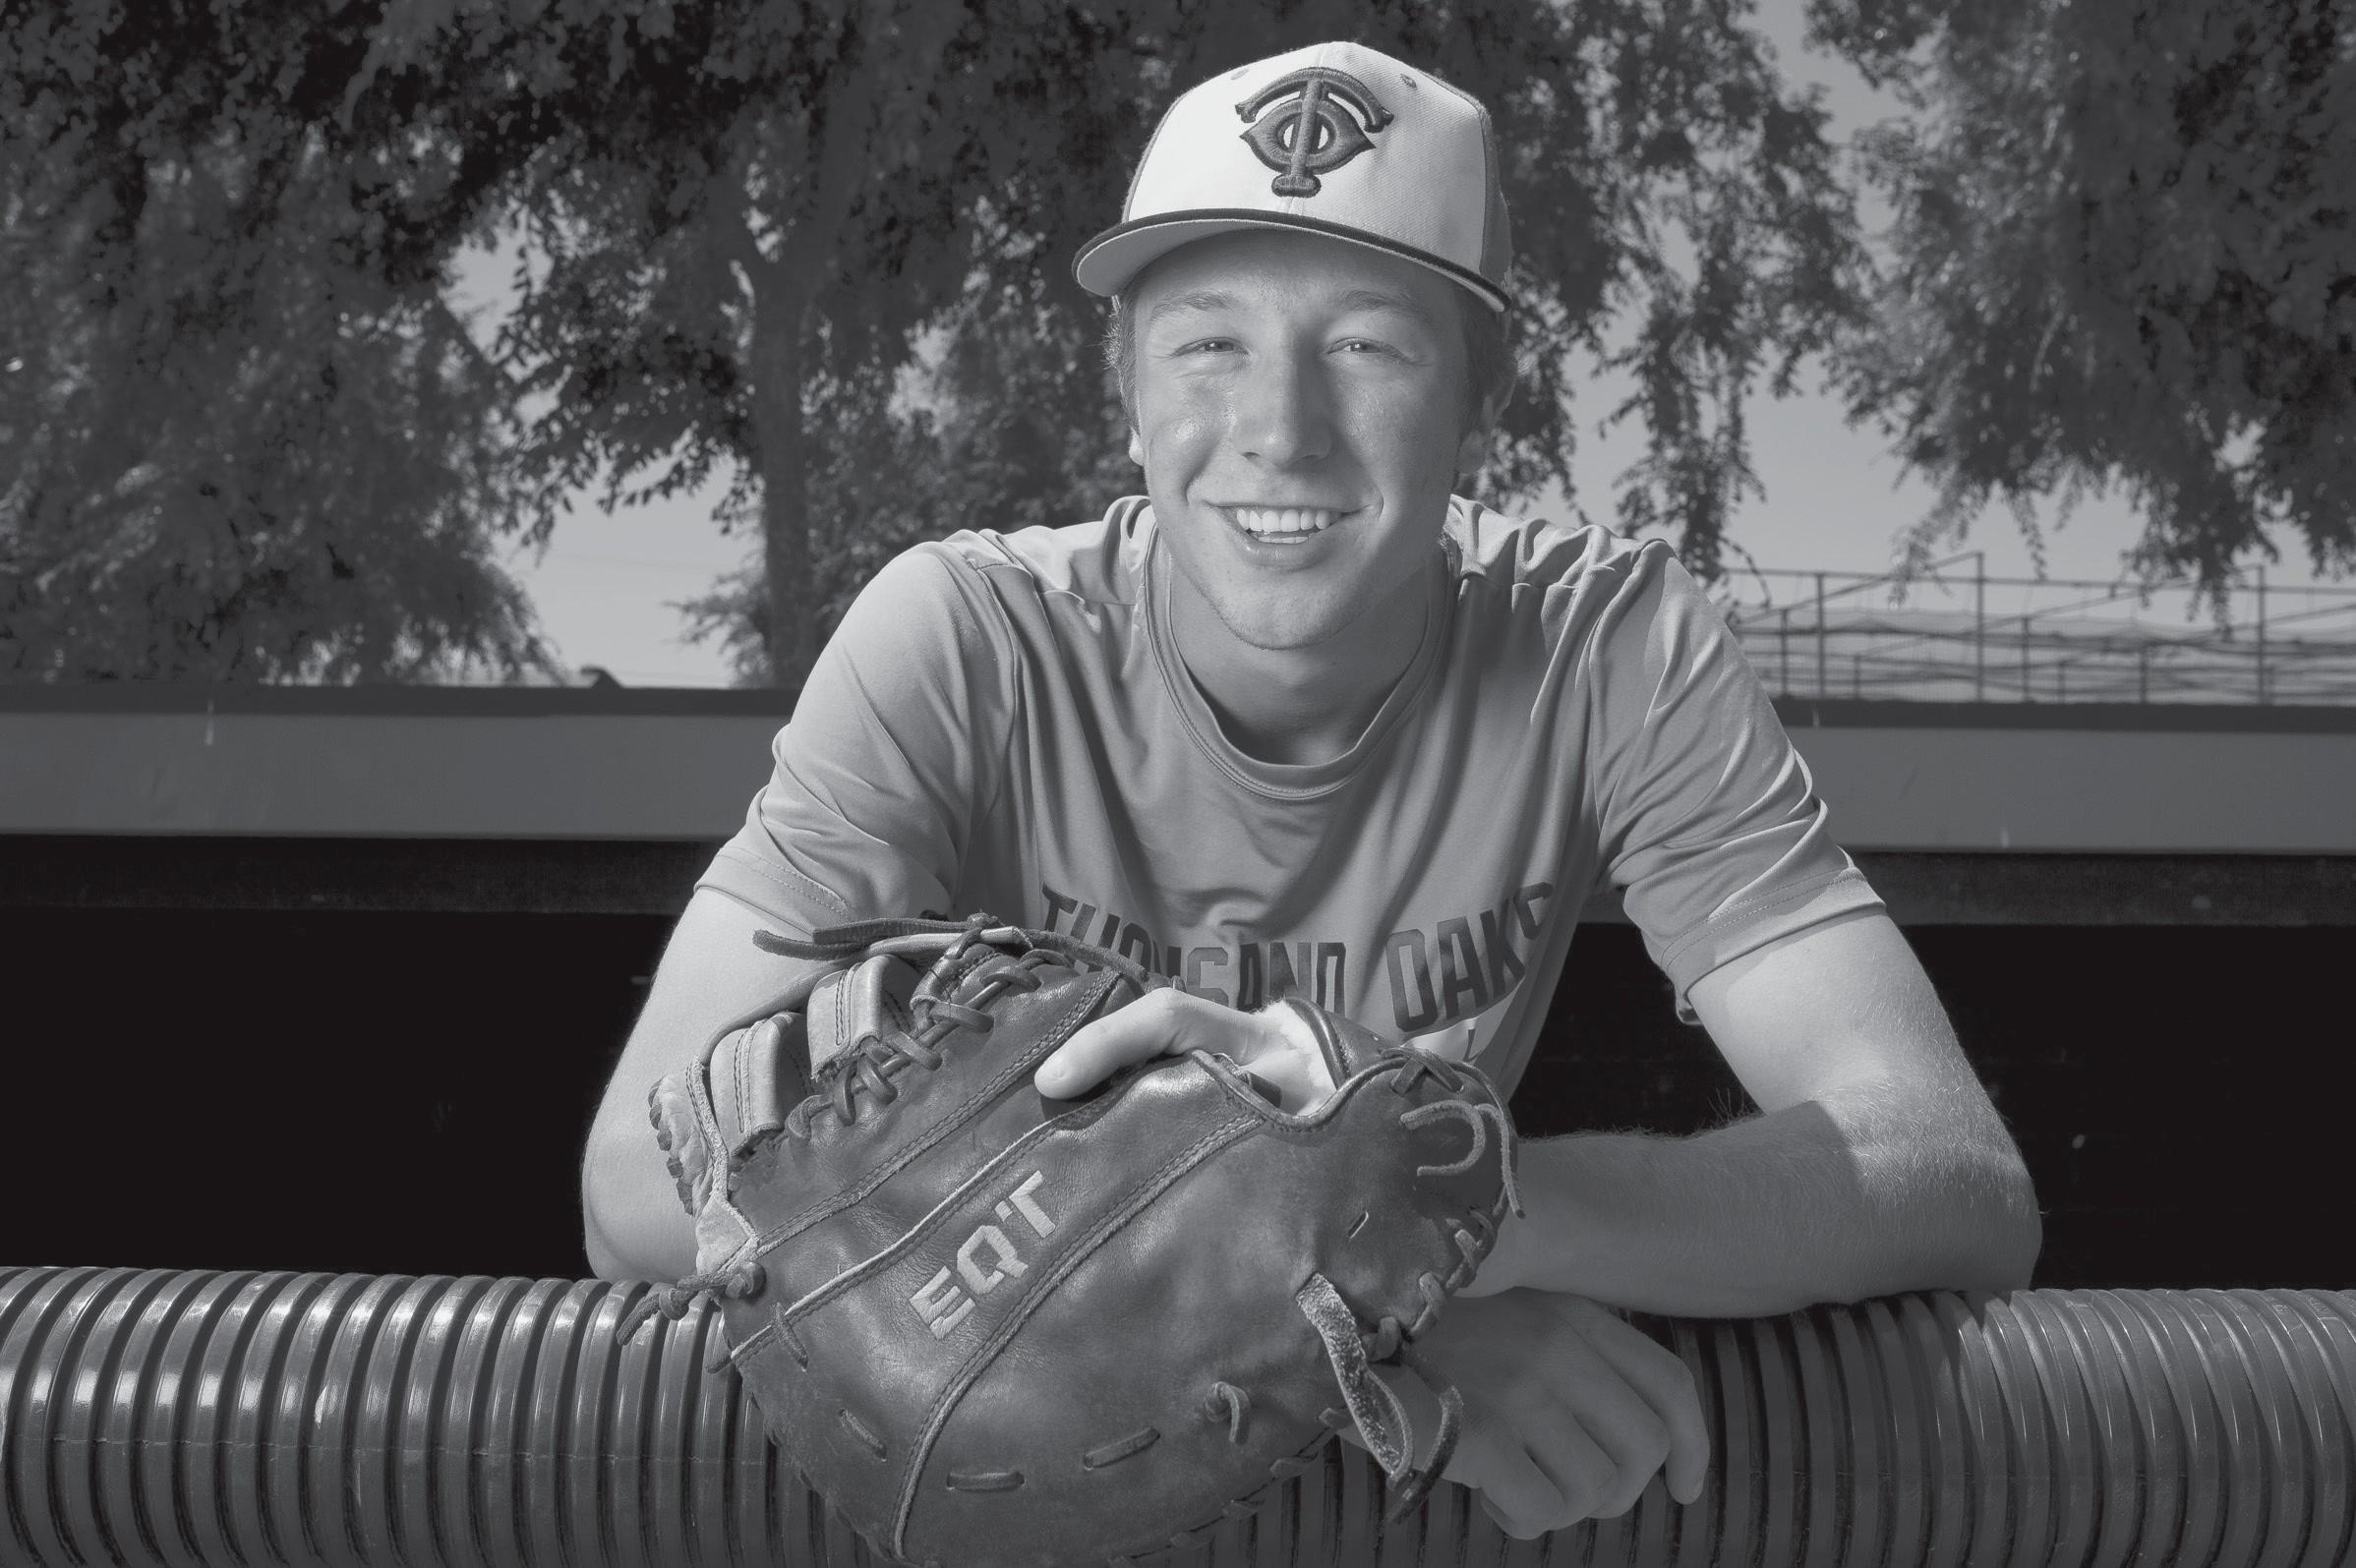 THANKFUL—Andrew Berard, a senior at Thousand Oaks High, survived a bout with lung cancer. A routine surgery turned into a six-hour operation to save his life two years ago. Two-thirds of his right lung was removed, but Berard has thrived for the Lancers' baseball team.